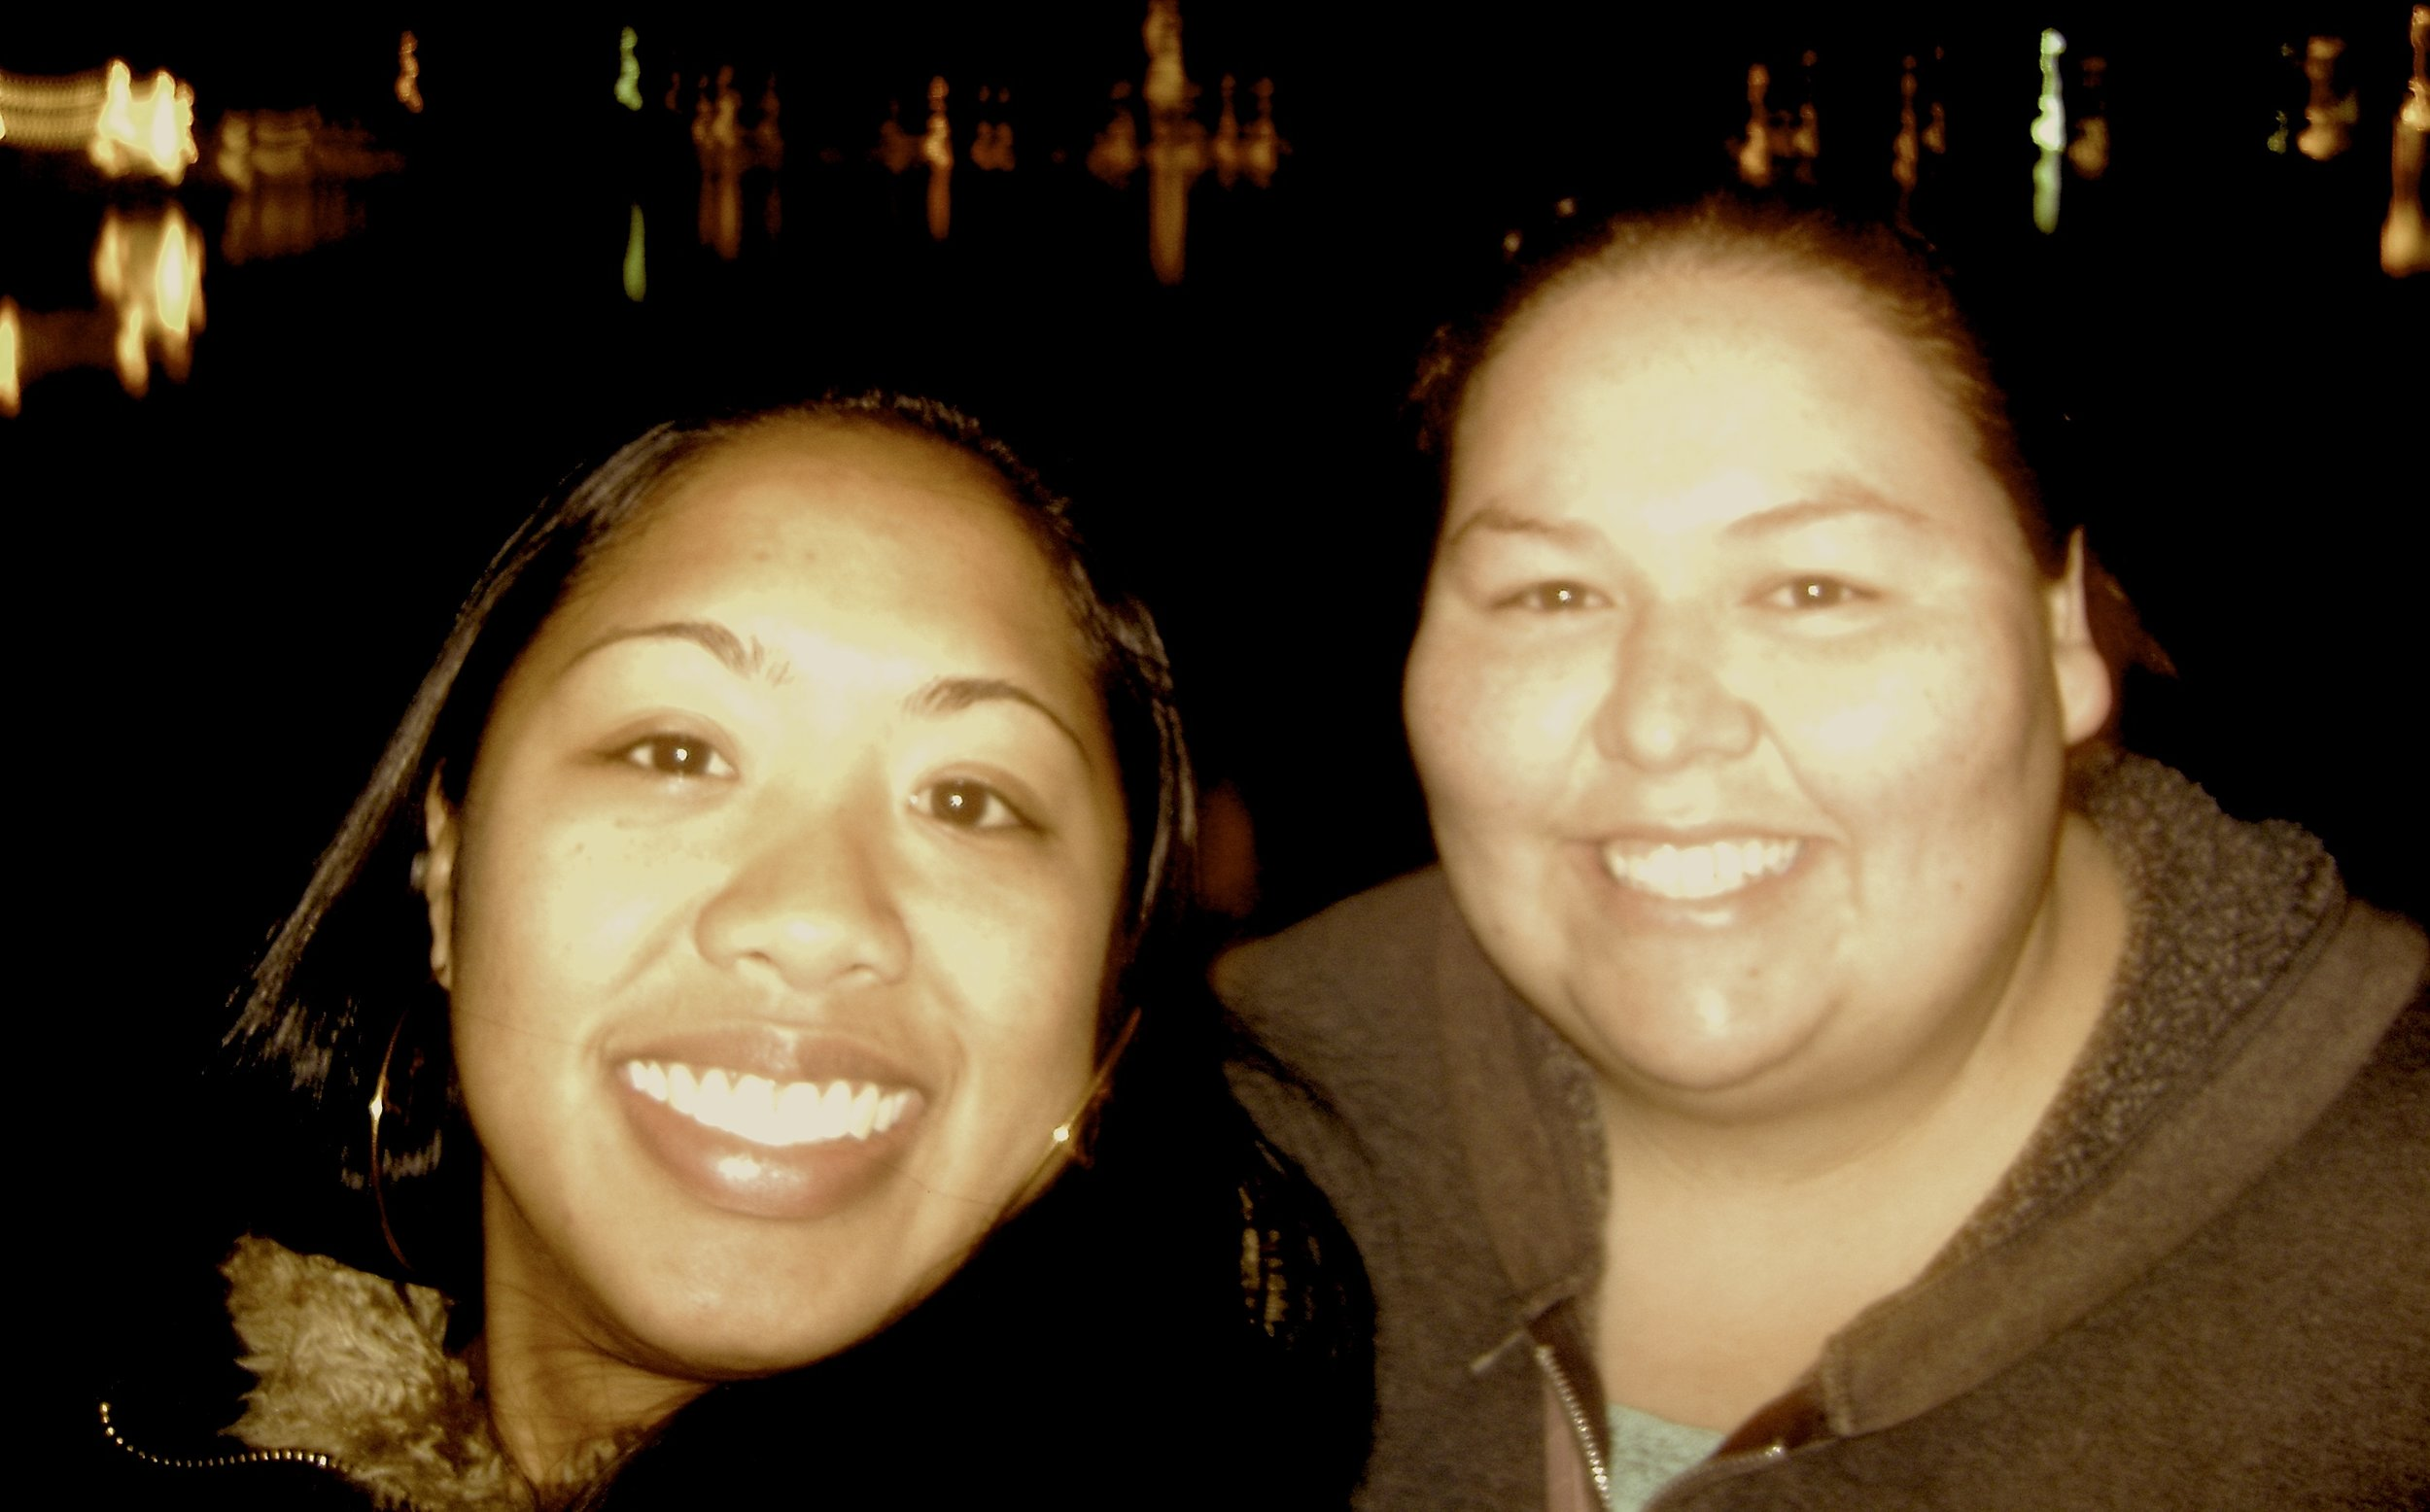 Amber and Raynelle, 2010. Our walk around Lake Merritt, Oakland, CA.